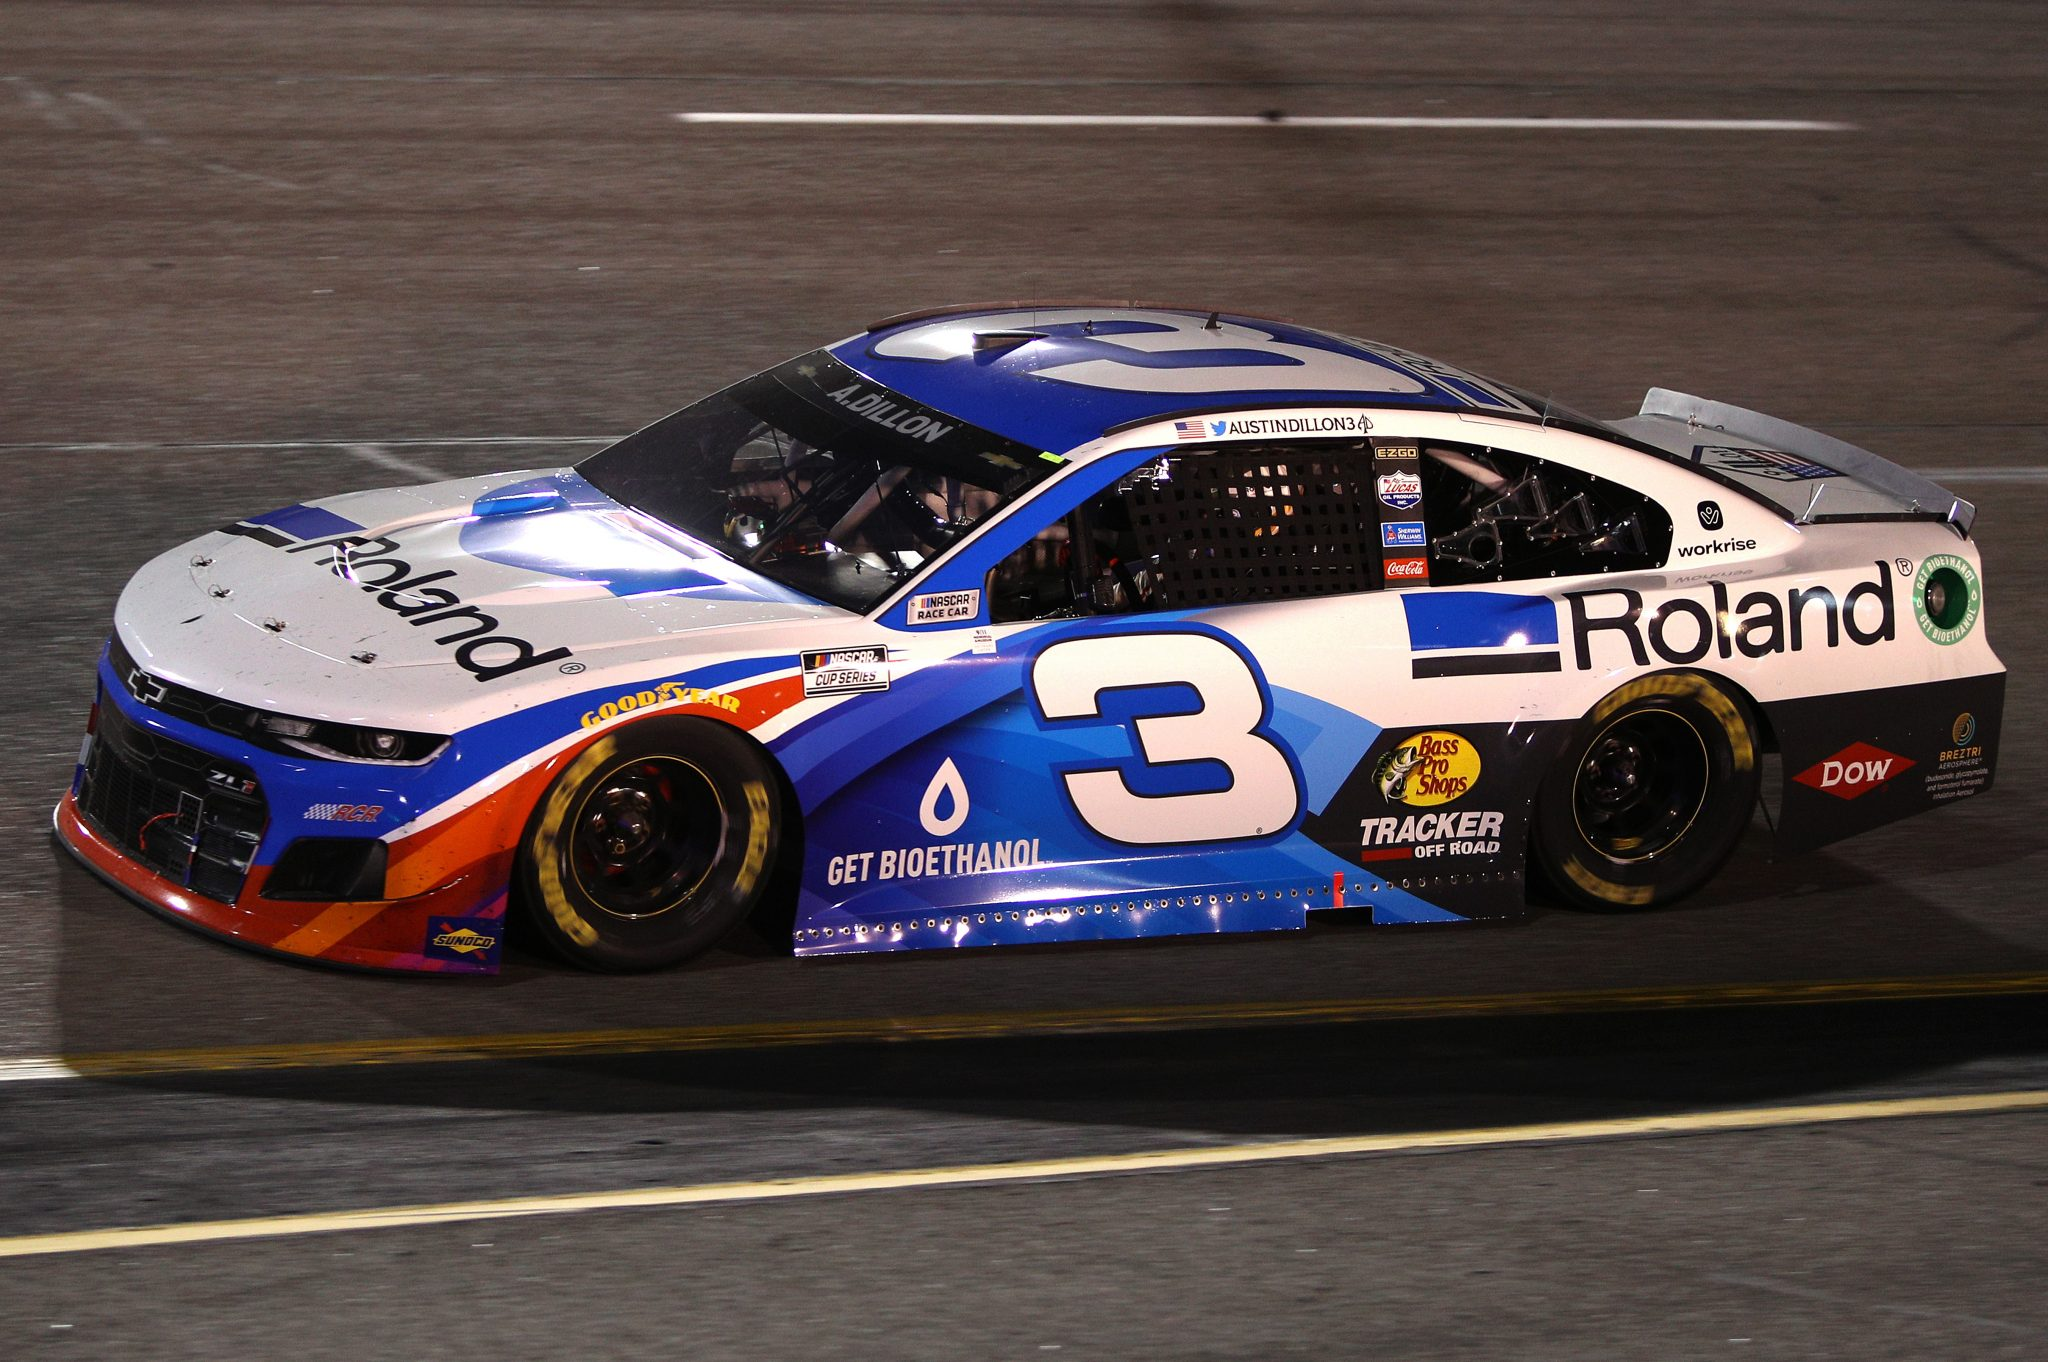 RICHMOND, VIRGINIA - SEPTEMBER 11: Austin Dillon, driver of the #3 Roland Chevrolet, drives during the NASCAR Cup Series Federated Auto Parts 400 Salute to First Responders at Richmond Raceway on September 11, 2021 in Richmond, Virginia. (Photo by Sean Gardner/Getty Images)   Getty Images